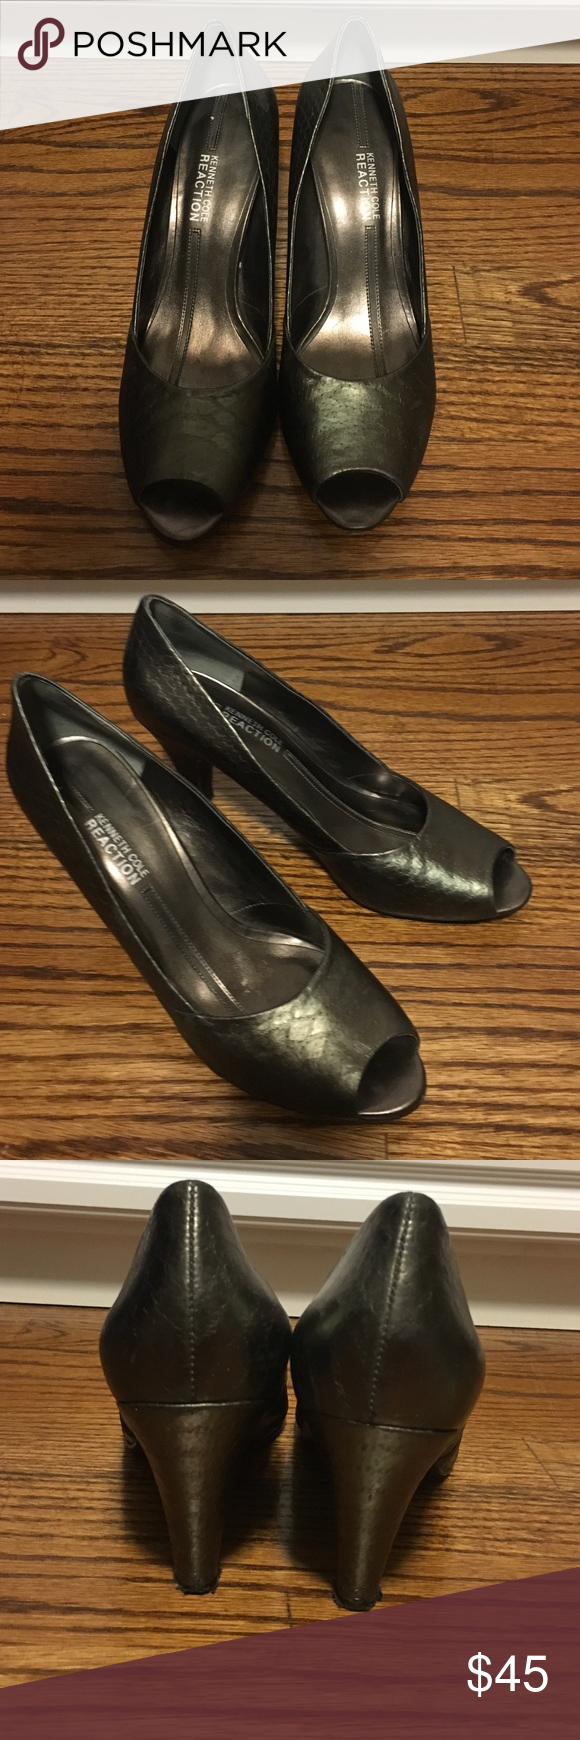 Kenneth Cole Reaction high heels Kenneth Cole peep toes high heels. Shiny grey. Size 9.5 Kenneth Cole Reaction Shoes Heels